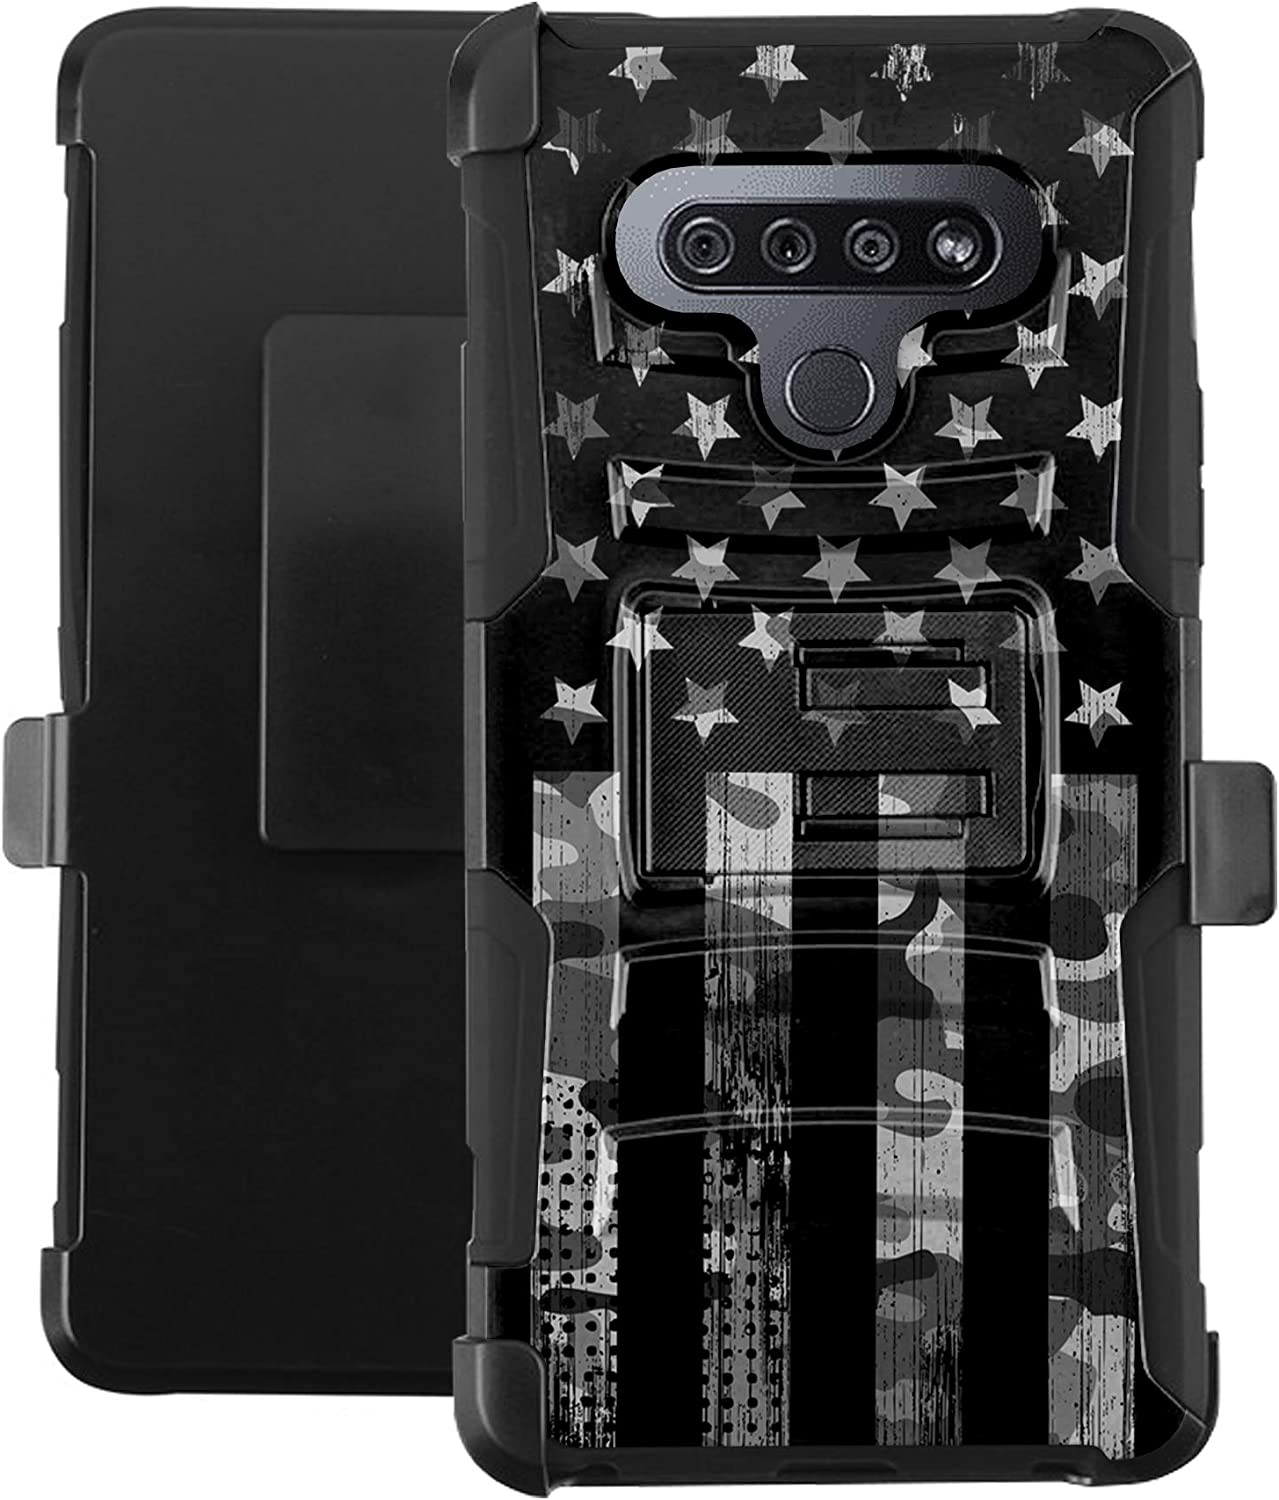 DALUX Hybrid Kickstand Holster Phone Case Compatible with K51 / Reflect- Gray Camo Half US Flag